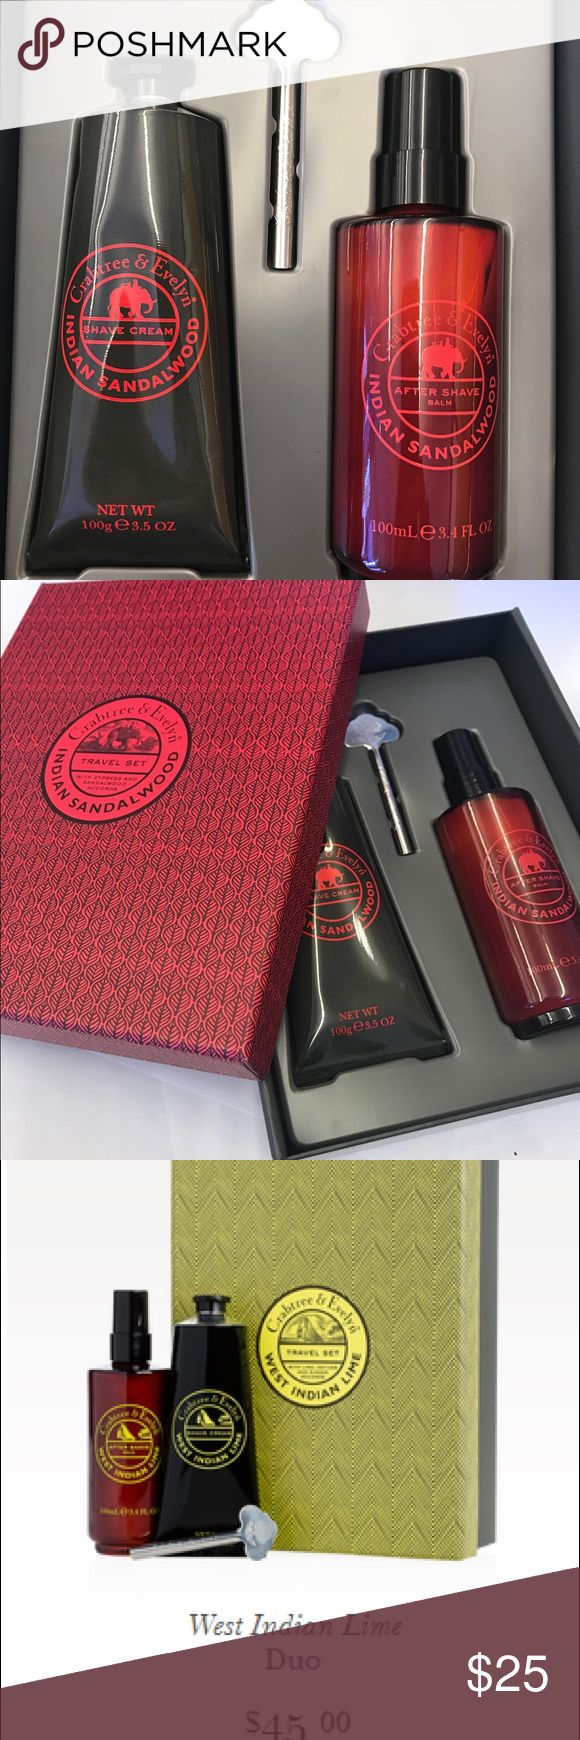 Crabtree & Evelyn Men's Shaving Set Crabtree & Evelyn Men's Shaving Set.  Shave cream, aftershave balm and tube key.  Beautiful Indian Sandalwood fragrance.  New. Great gift. Crabtree & Evelyn Other